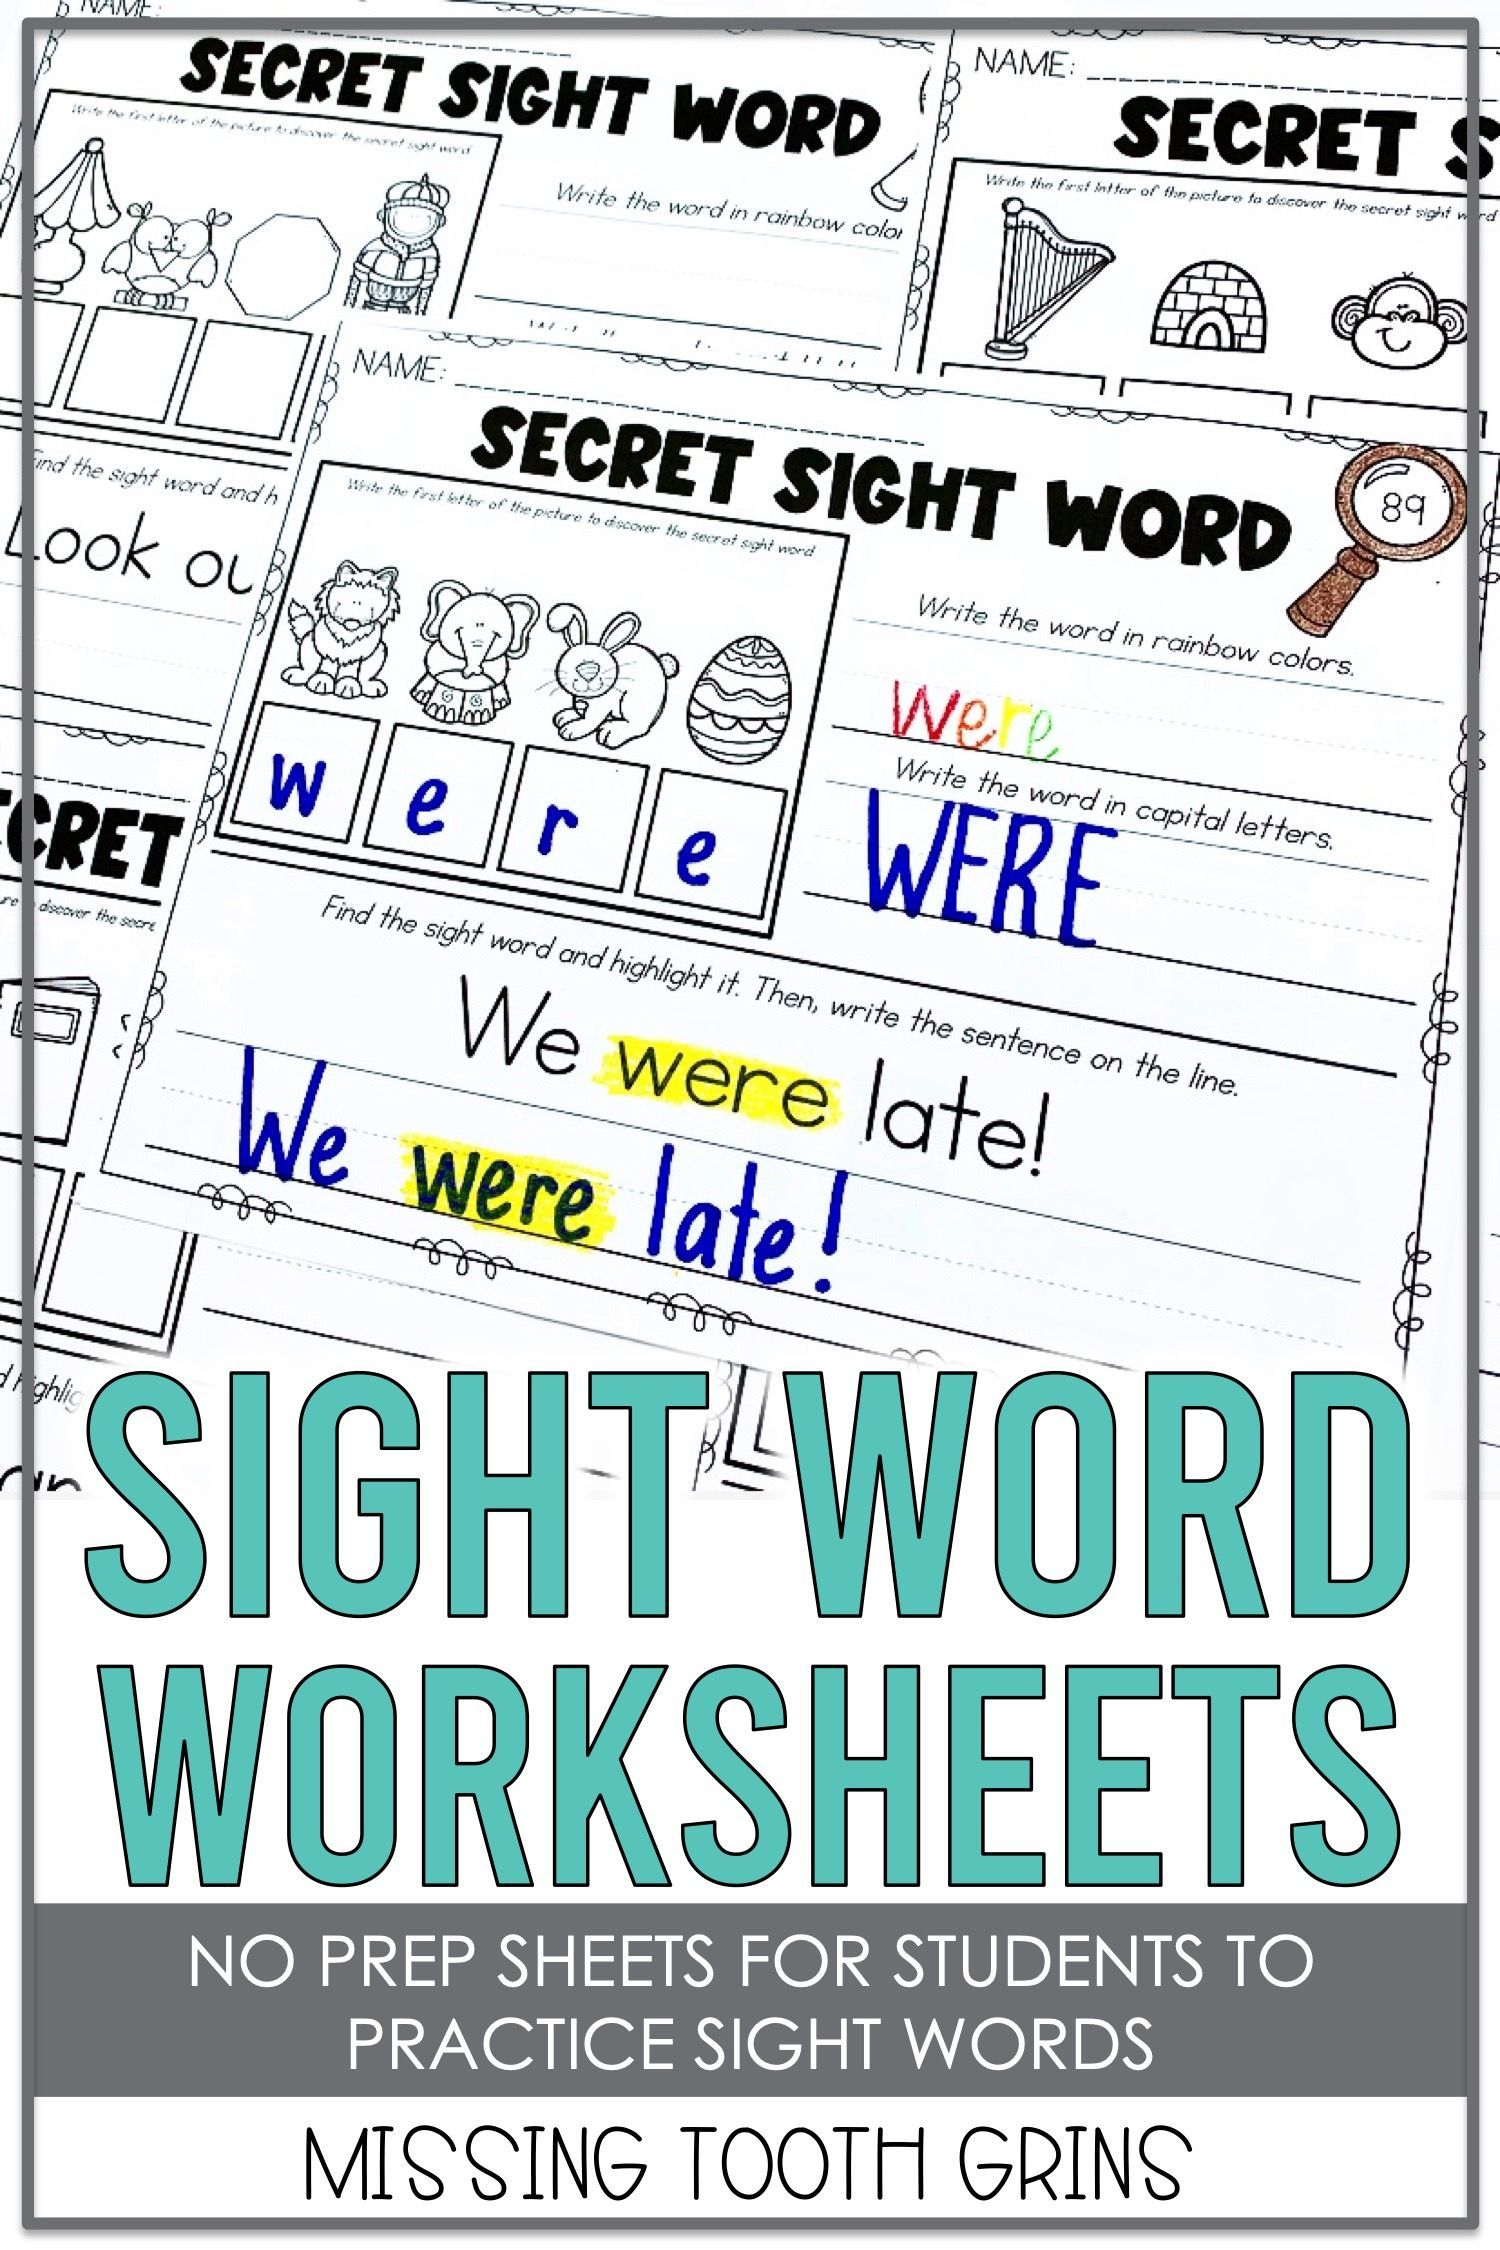 Sight Word Worksheets Distance Learning Writing Sight Words Sight Word Writing Practice Sight Word Worksheets [ 2250 x 1500 Pixel ]